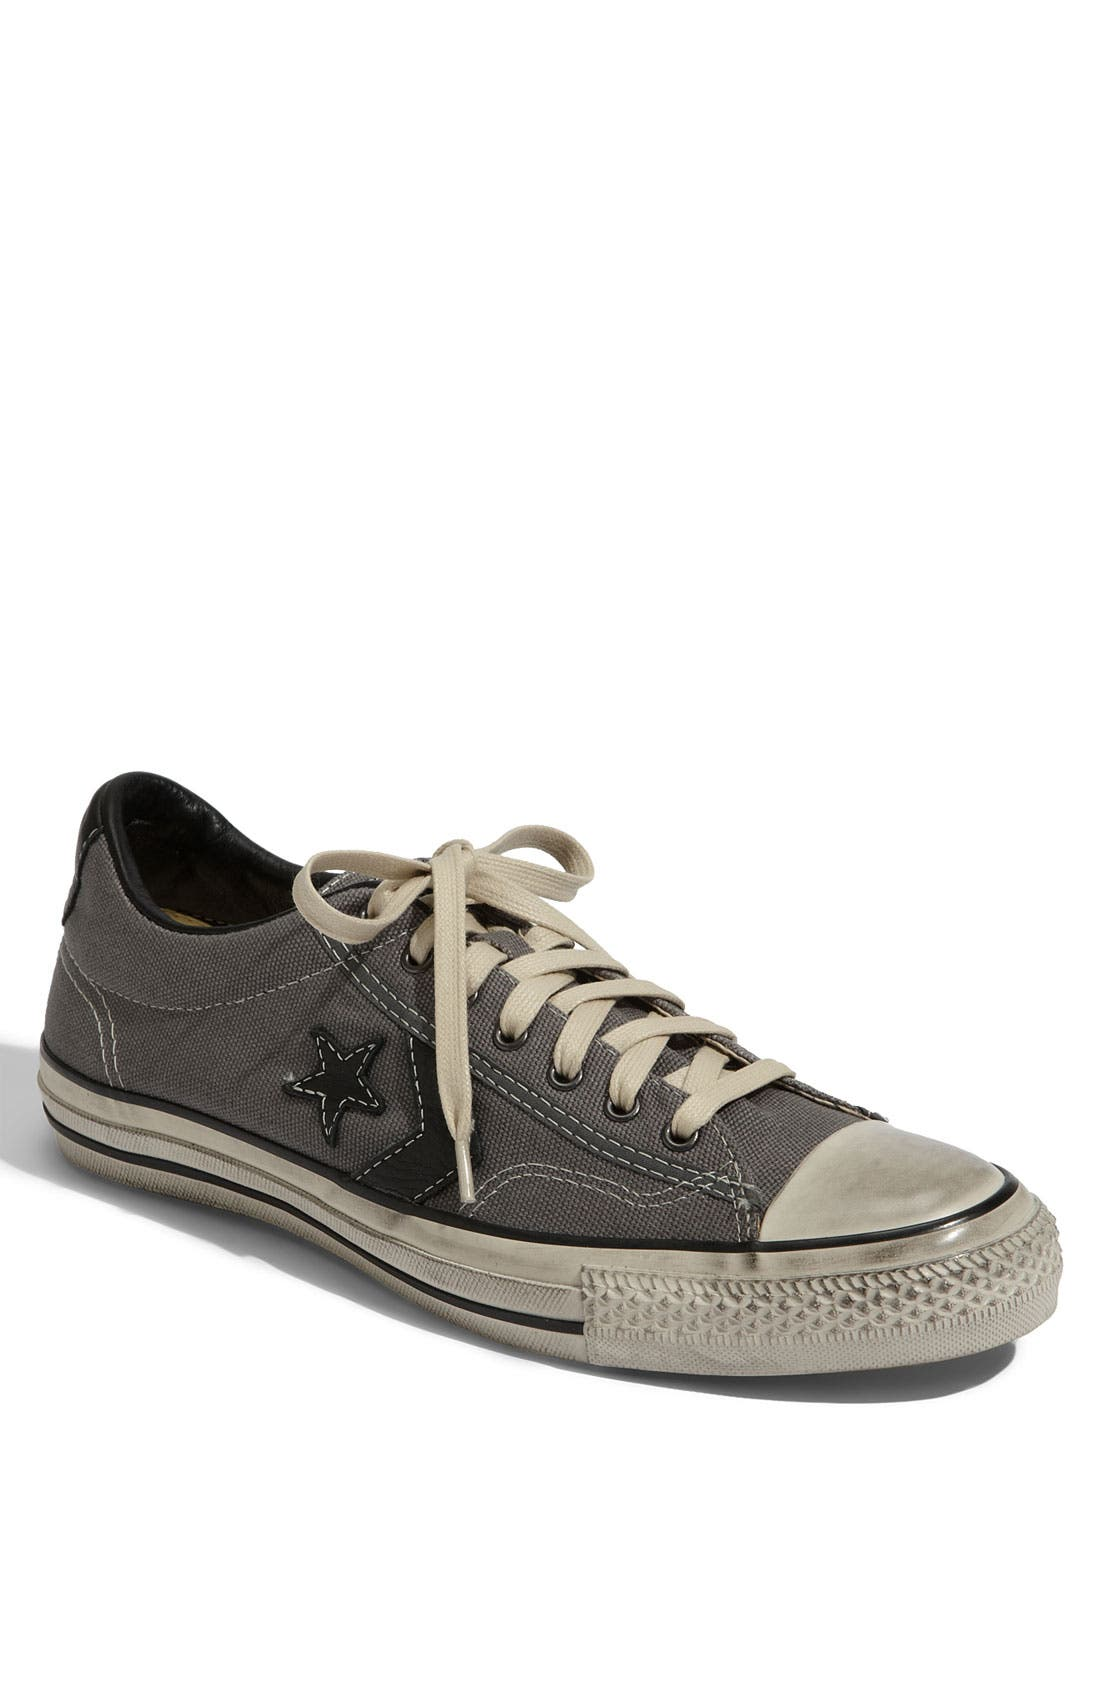 Main Image - Converse by John Varvatos 'Star Player' Canvas Sneaker (Men)